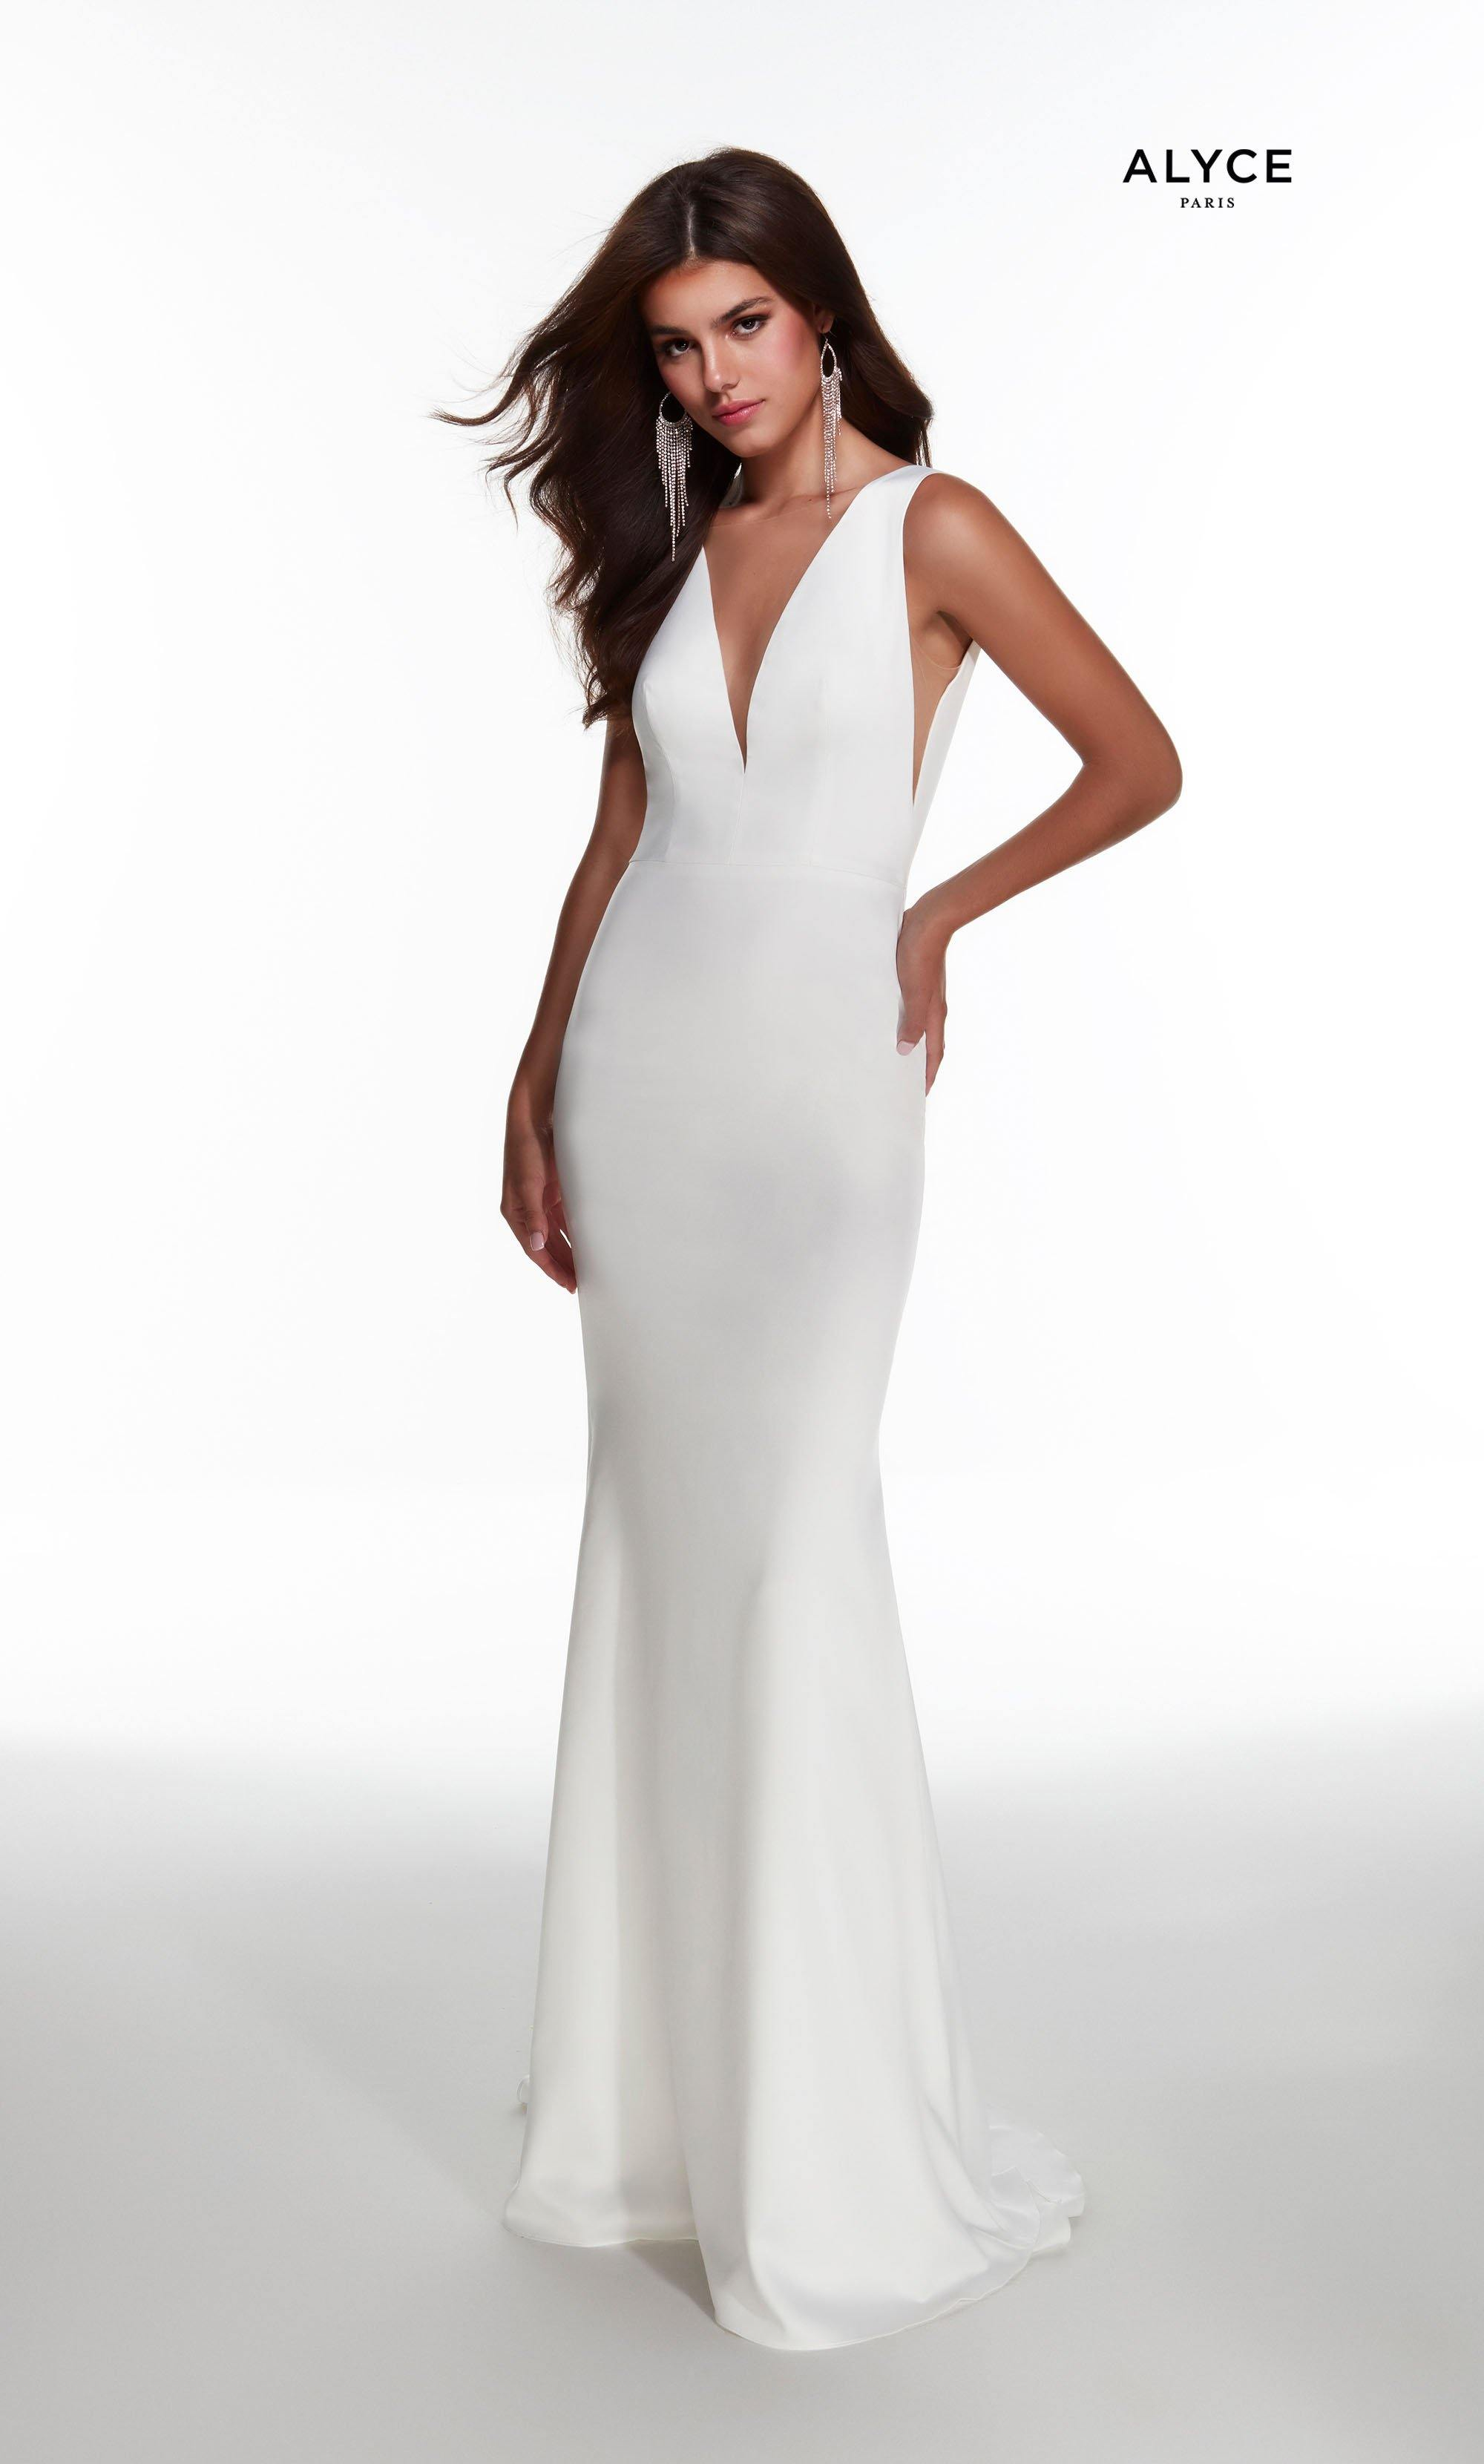 Diamond White satin informal bridal gown with a V neckline and detachable, layered overskirt with jewel accented waist